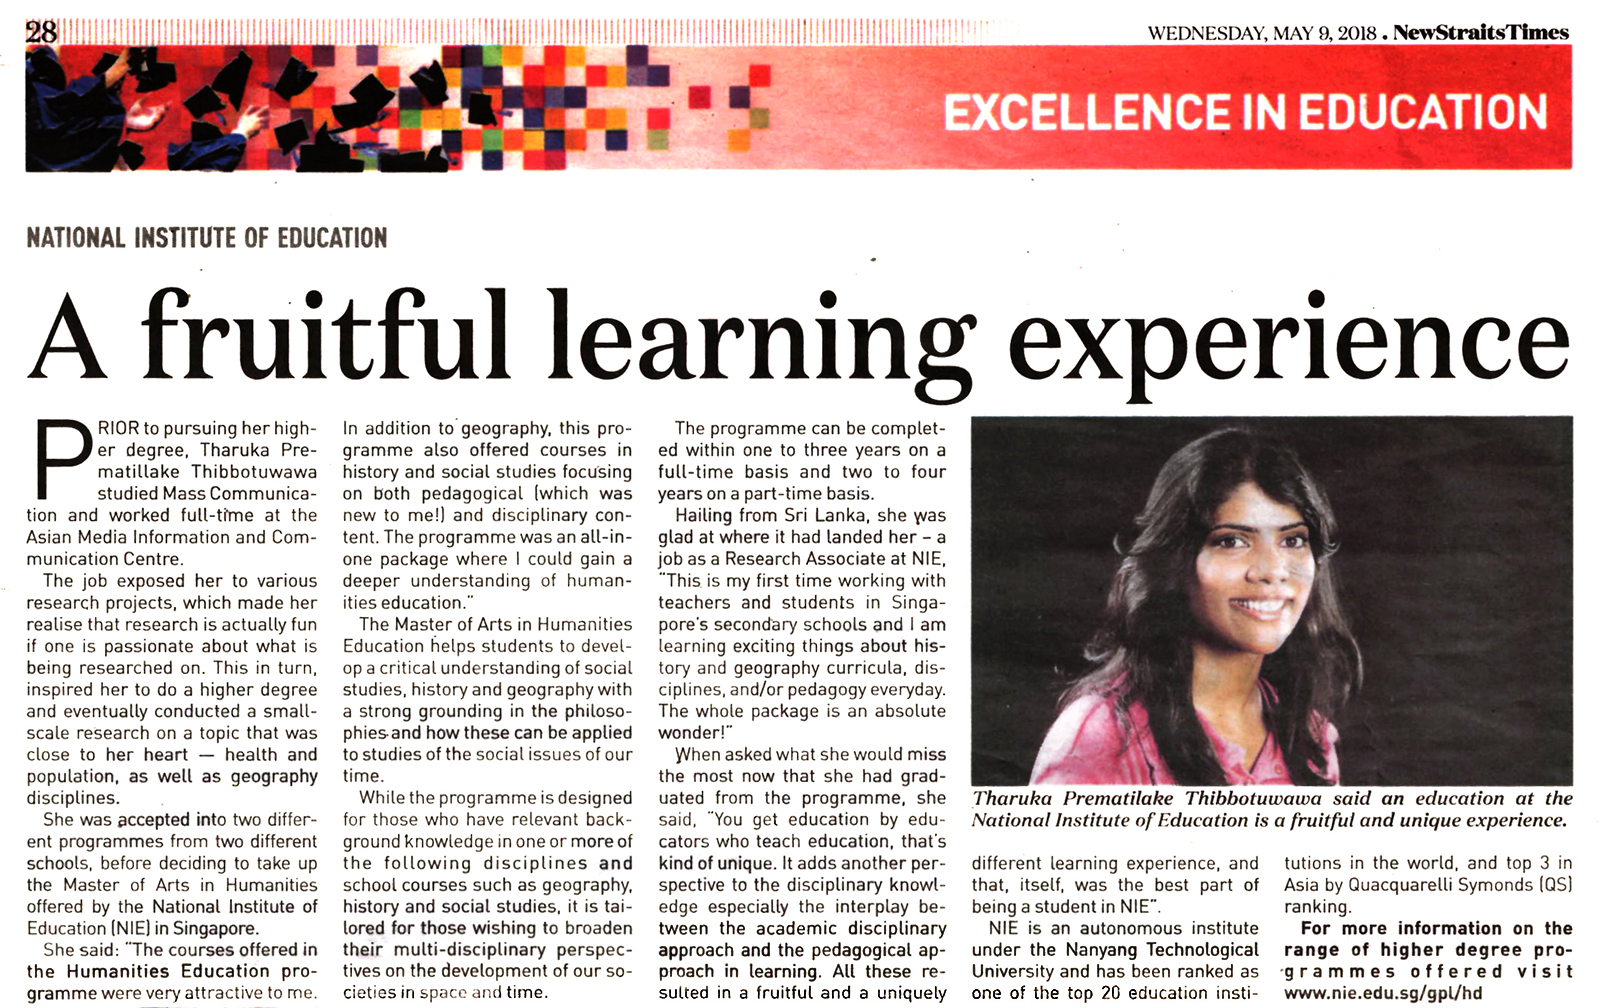 A fruitful learning experience